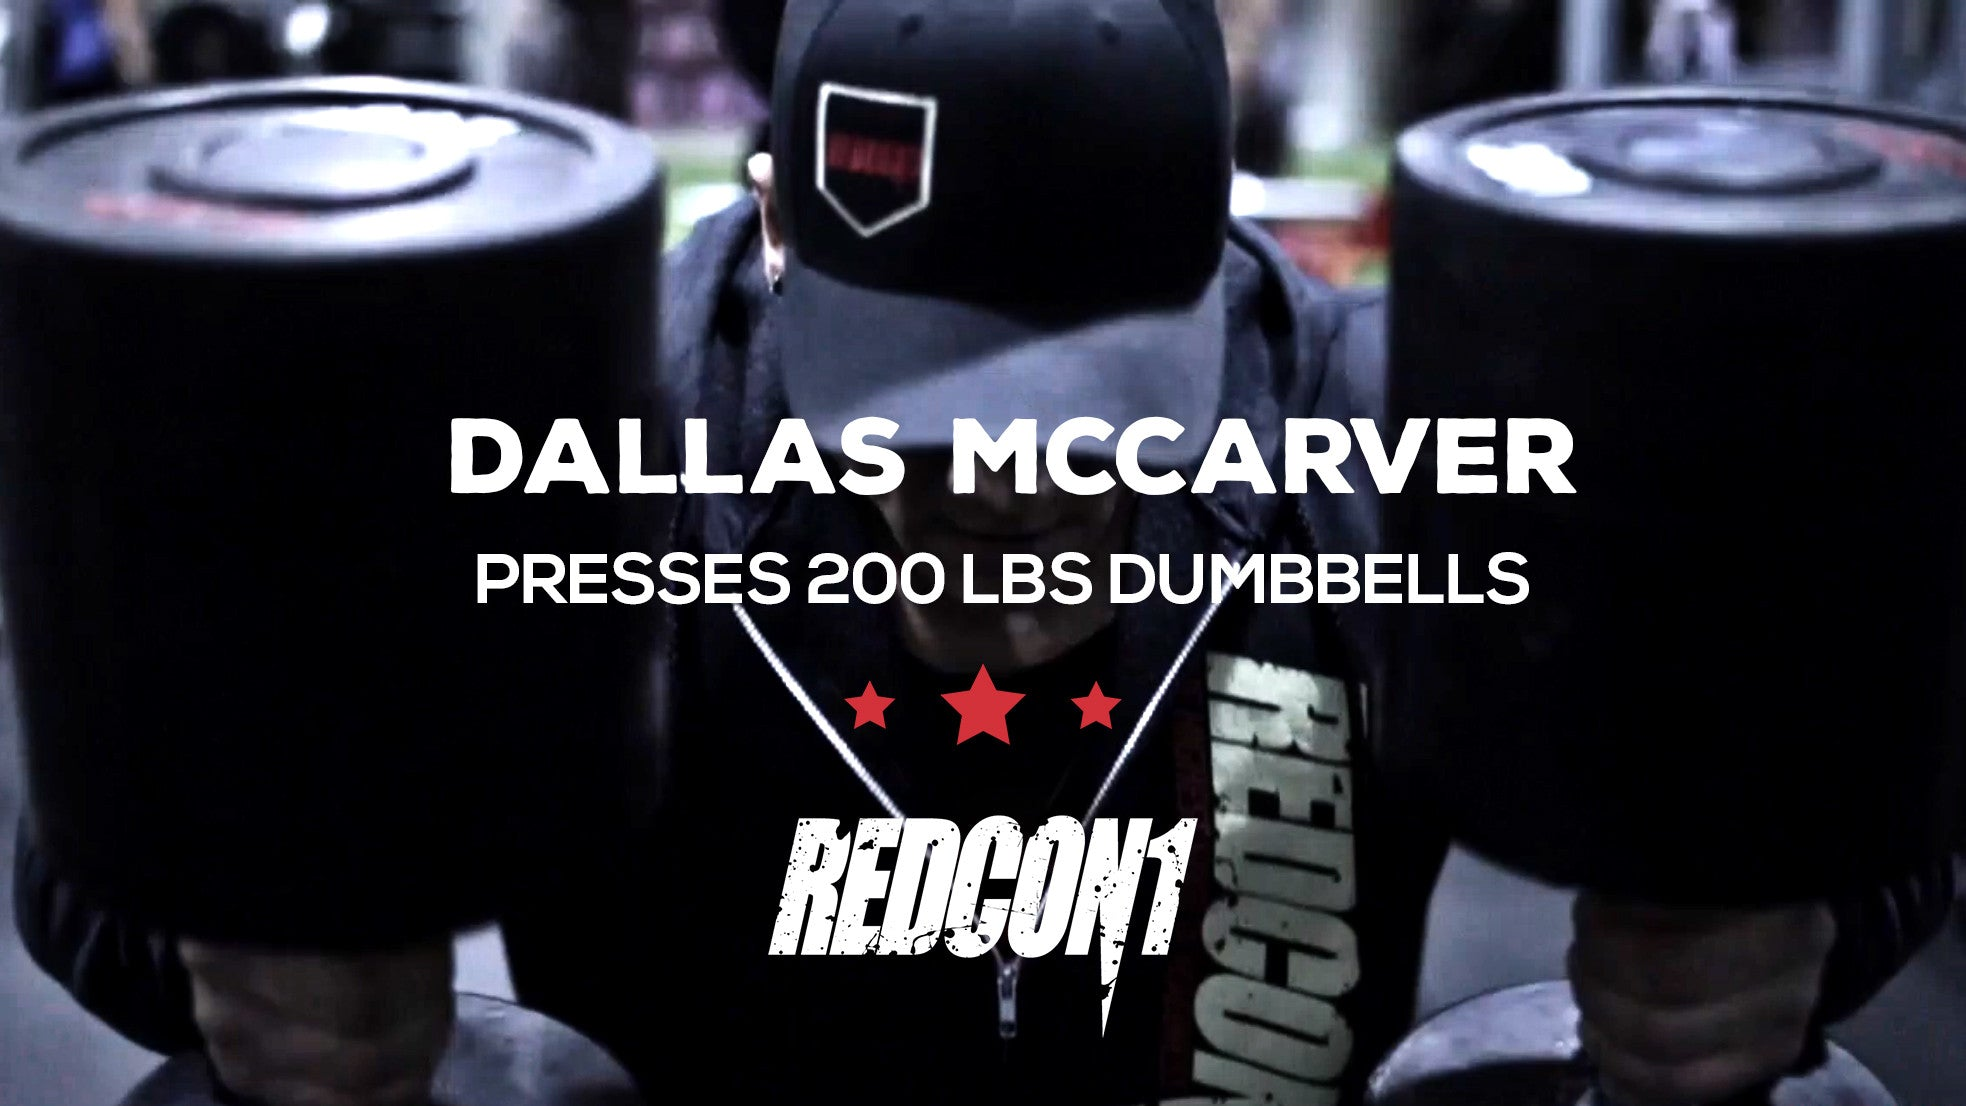 Dallas McCarver Presses 200Lbs Dumbbells